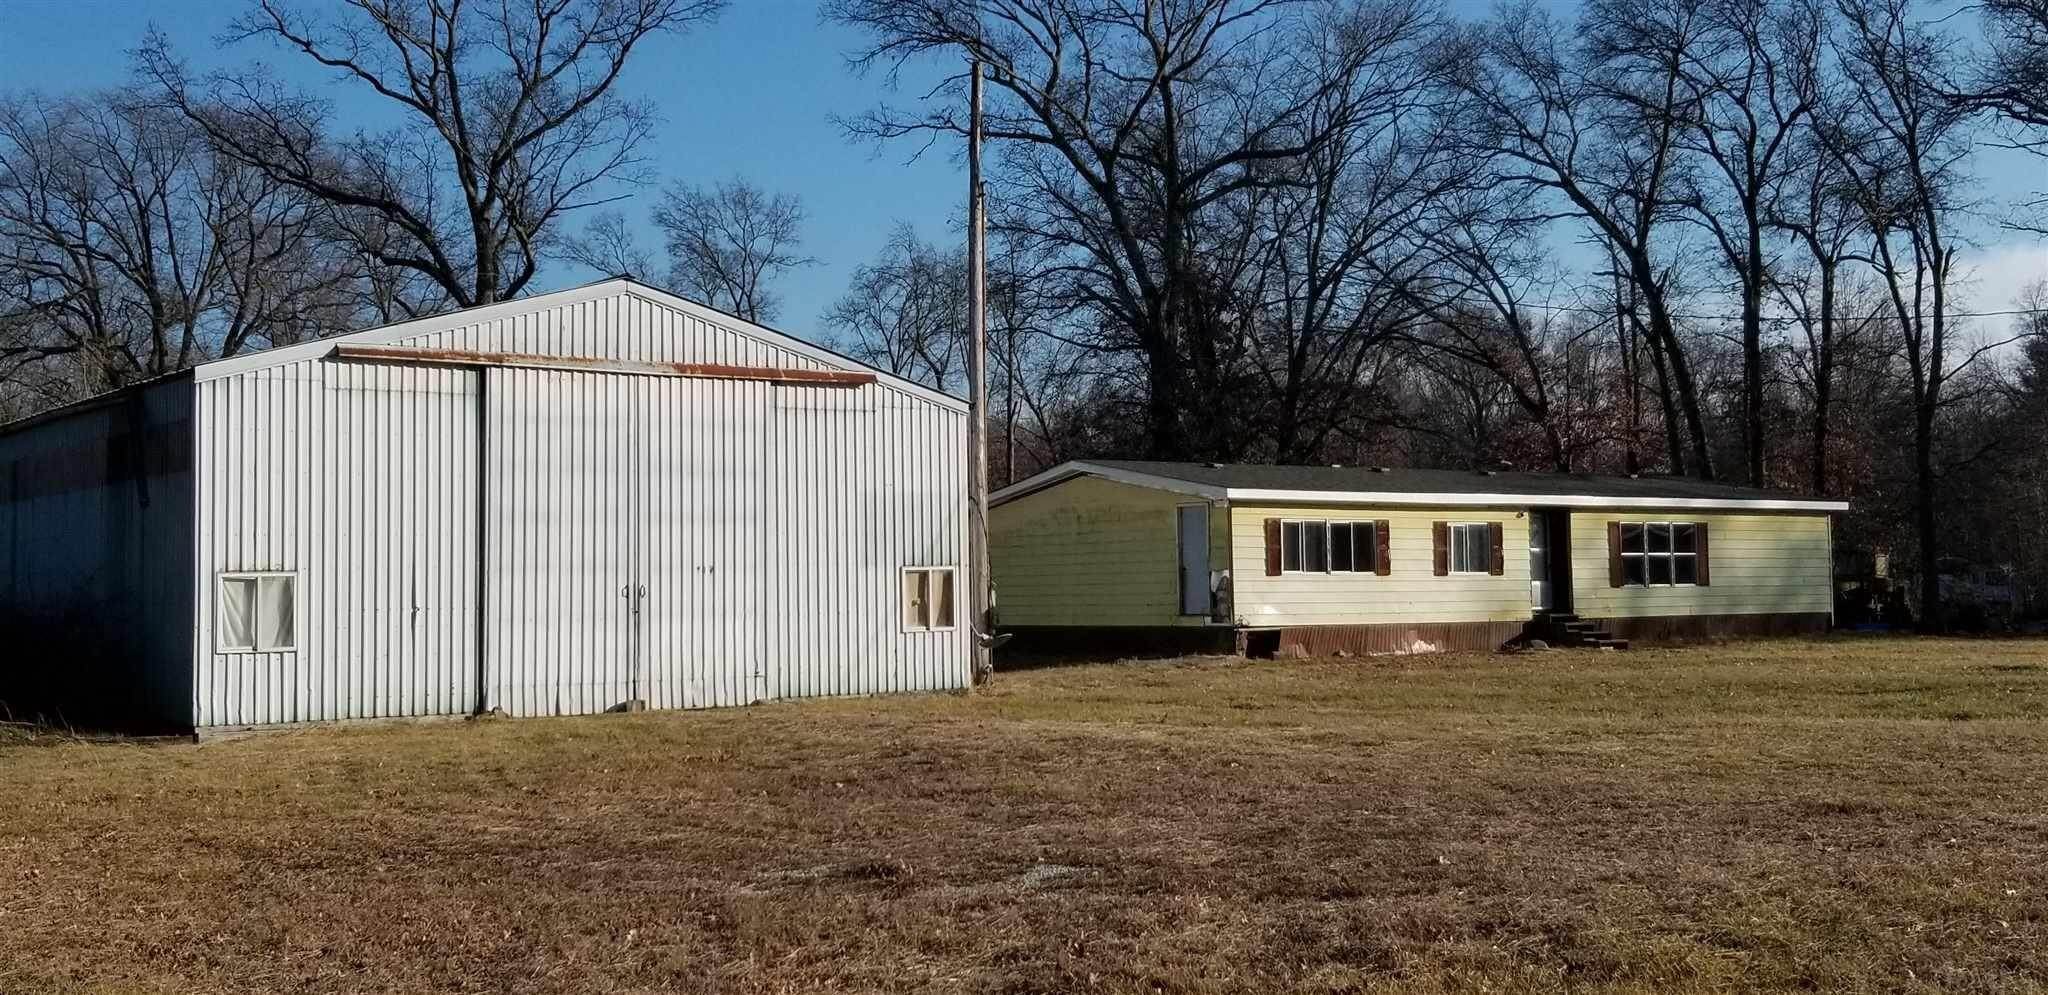 Manufactured Home for Sale at 6390 N US 421 Highway Medaryville, Indiana 47957 United States